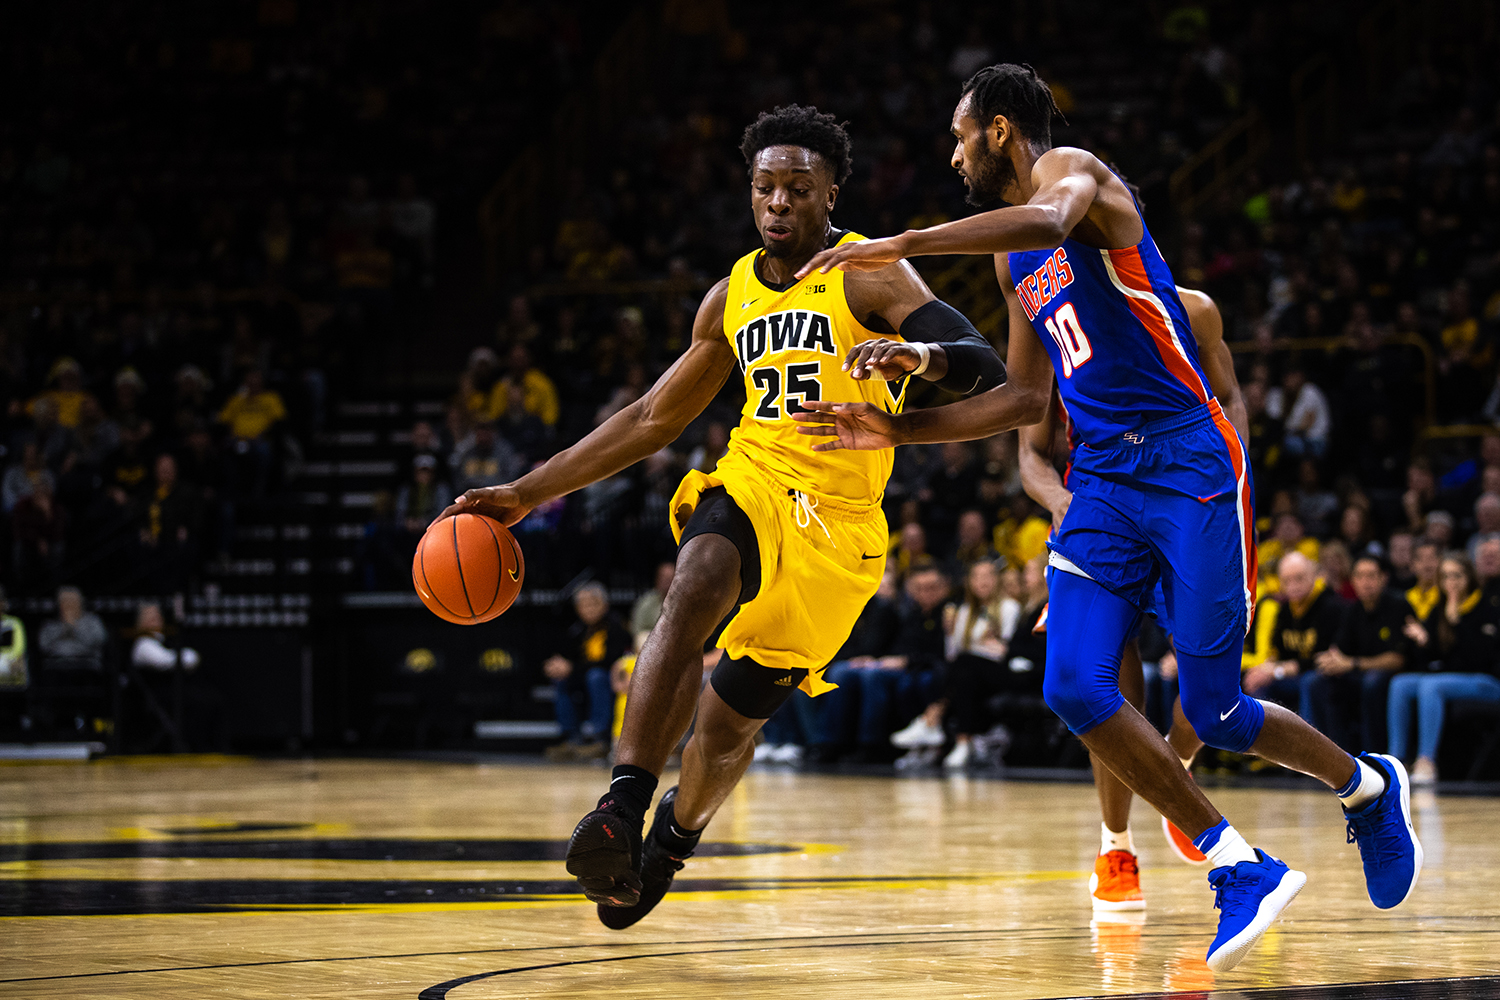 Iowa+forward+Tyler+Cook+%2325+drives+the+ball+up+the+paint+during+the+men%27s+basketball+game+against+Savannah+State+at+Carver-Hawkeye+Arena+on+Tuesday%2C+December+22%2C+2018.+The+Hawkeyes+defeated+the+Tigers+110-64.